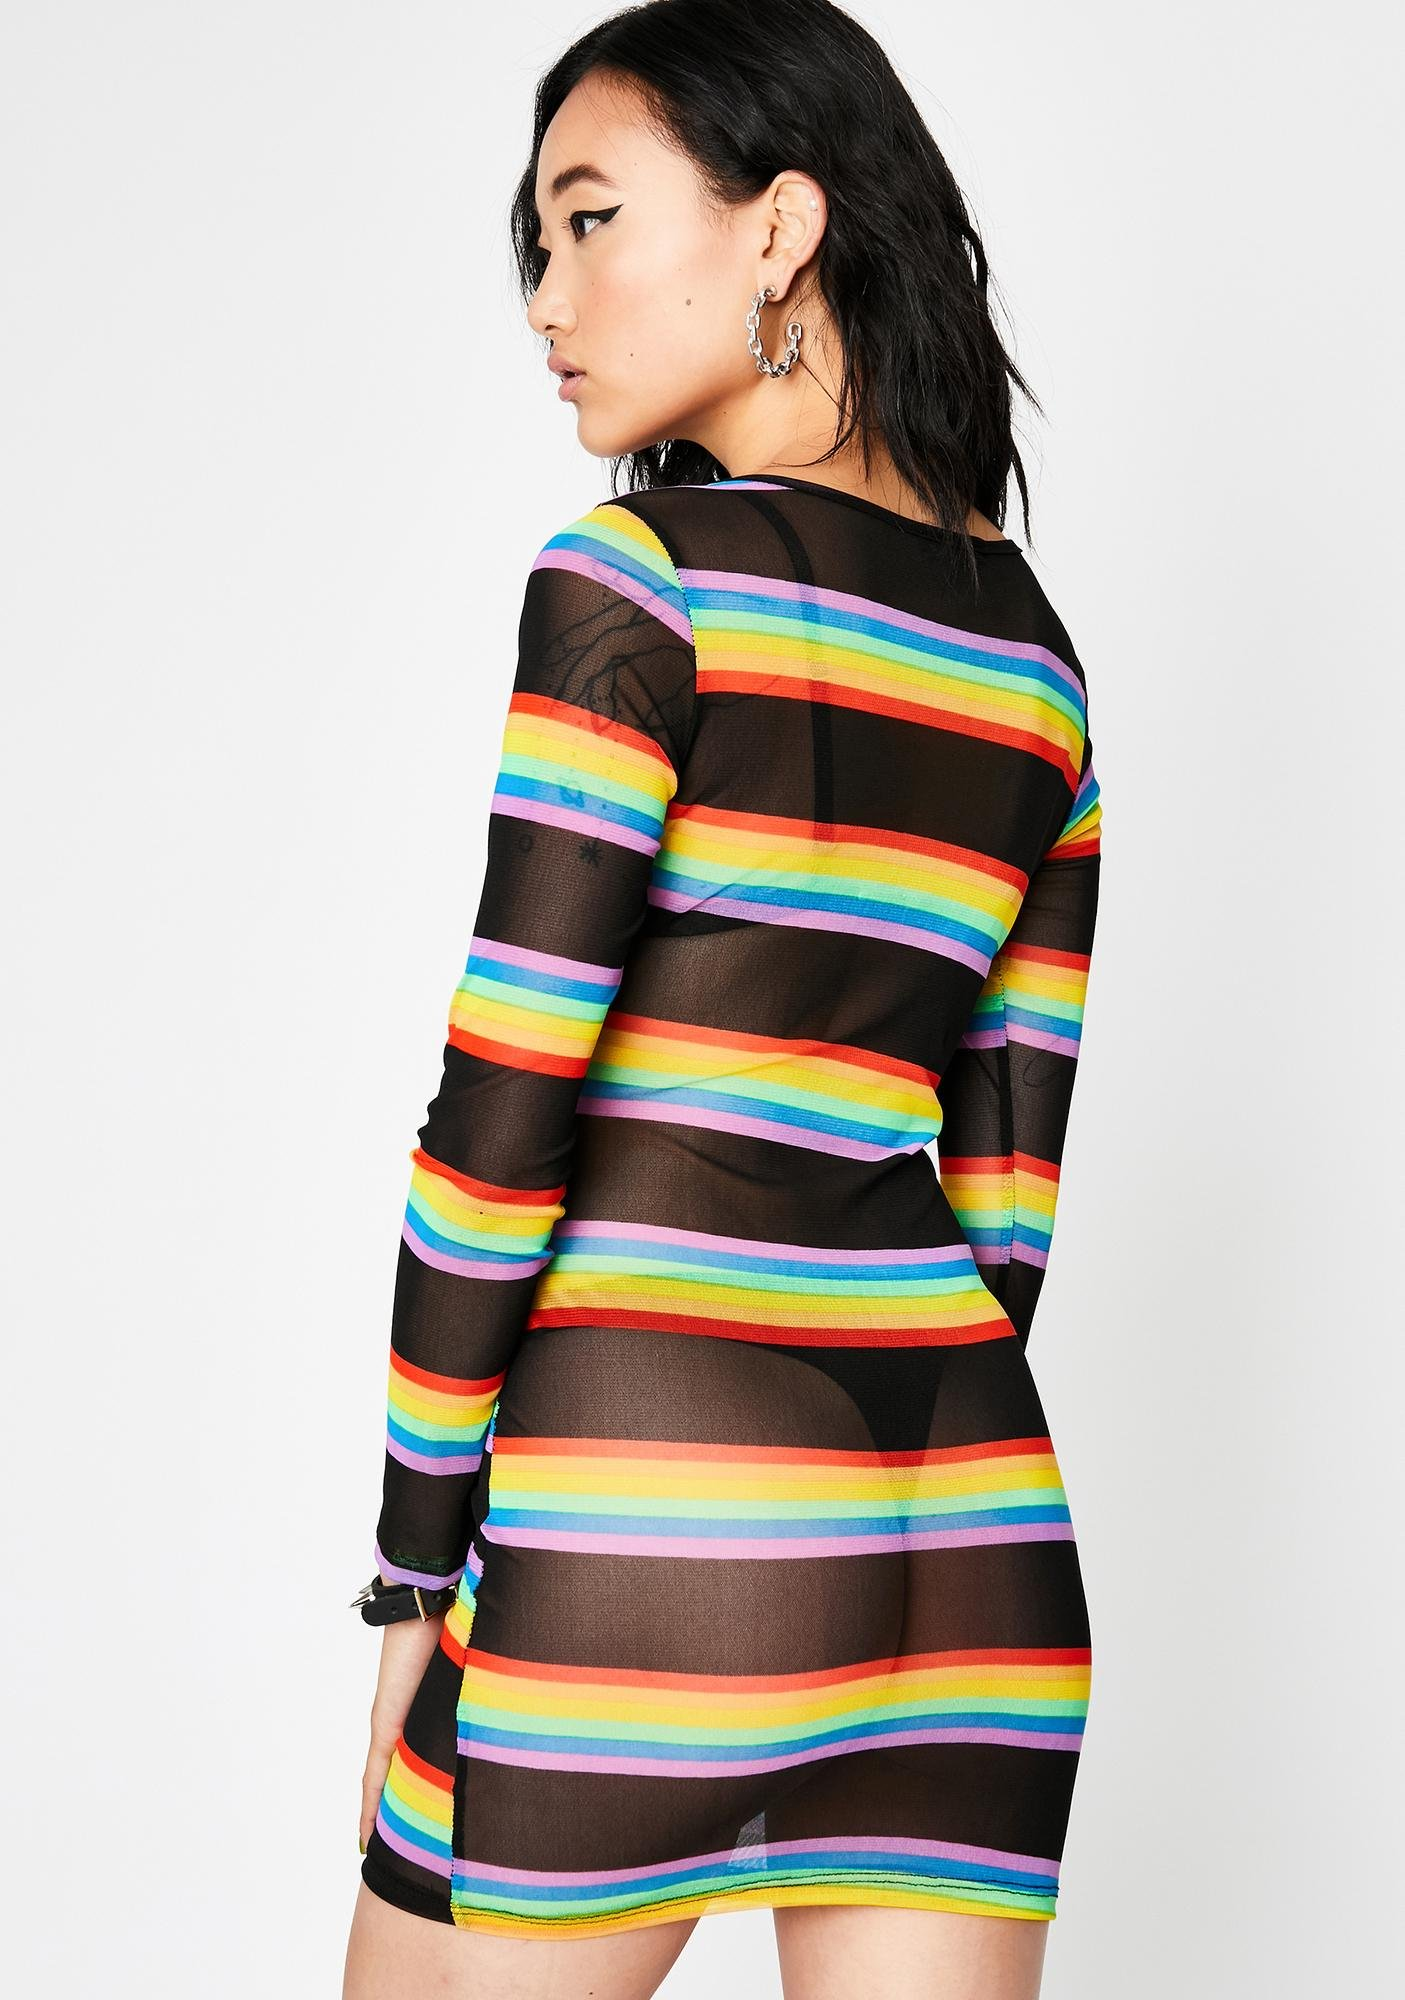 Onyx Saturated Visionz Sheer Dress